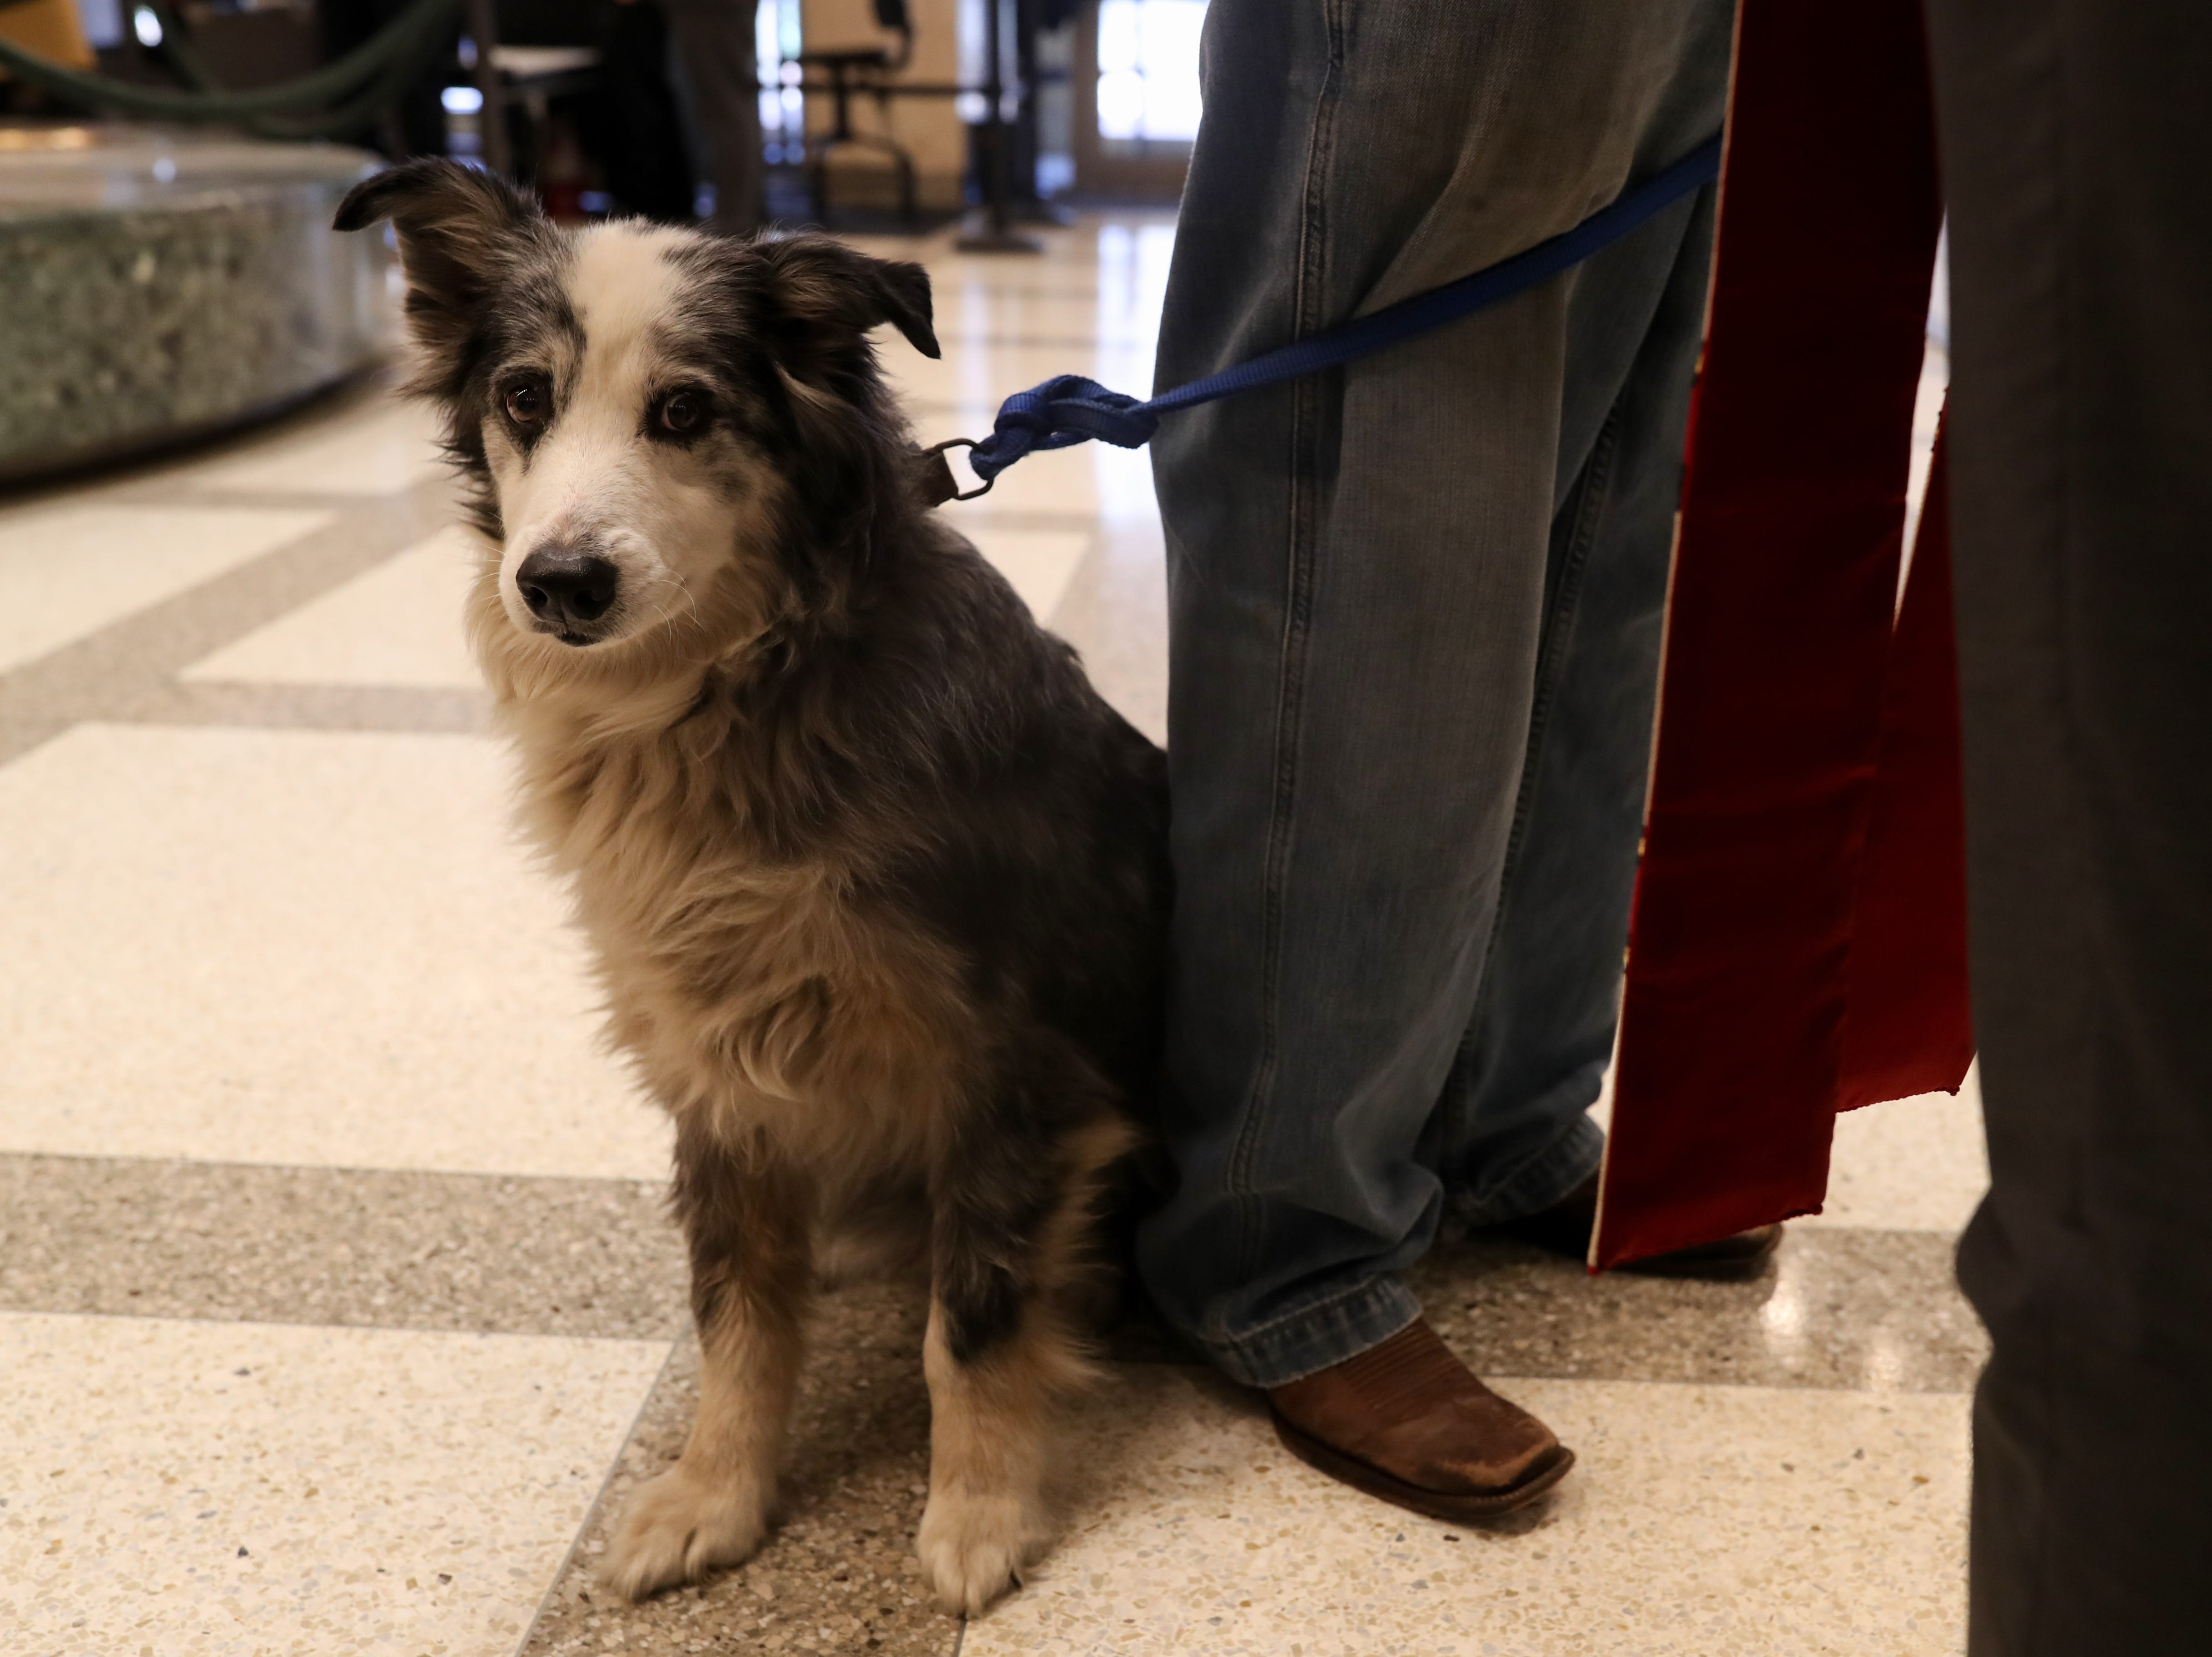 Koda the Australian Shepherd waits as his owner, Bruce Borders, prays with Rev. David Killeen of St. John's Episcopal Church who stood in the Florida Capitol rotunda placing ashes on the foreheads of busy passersby on Ash Wednesday, March 6, 3019.